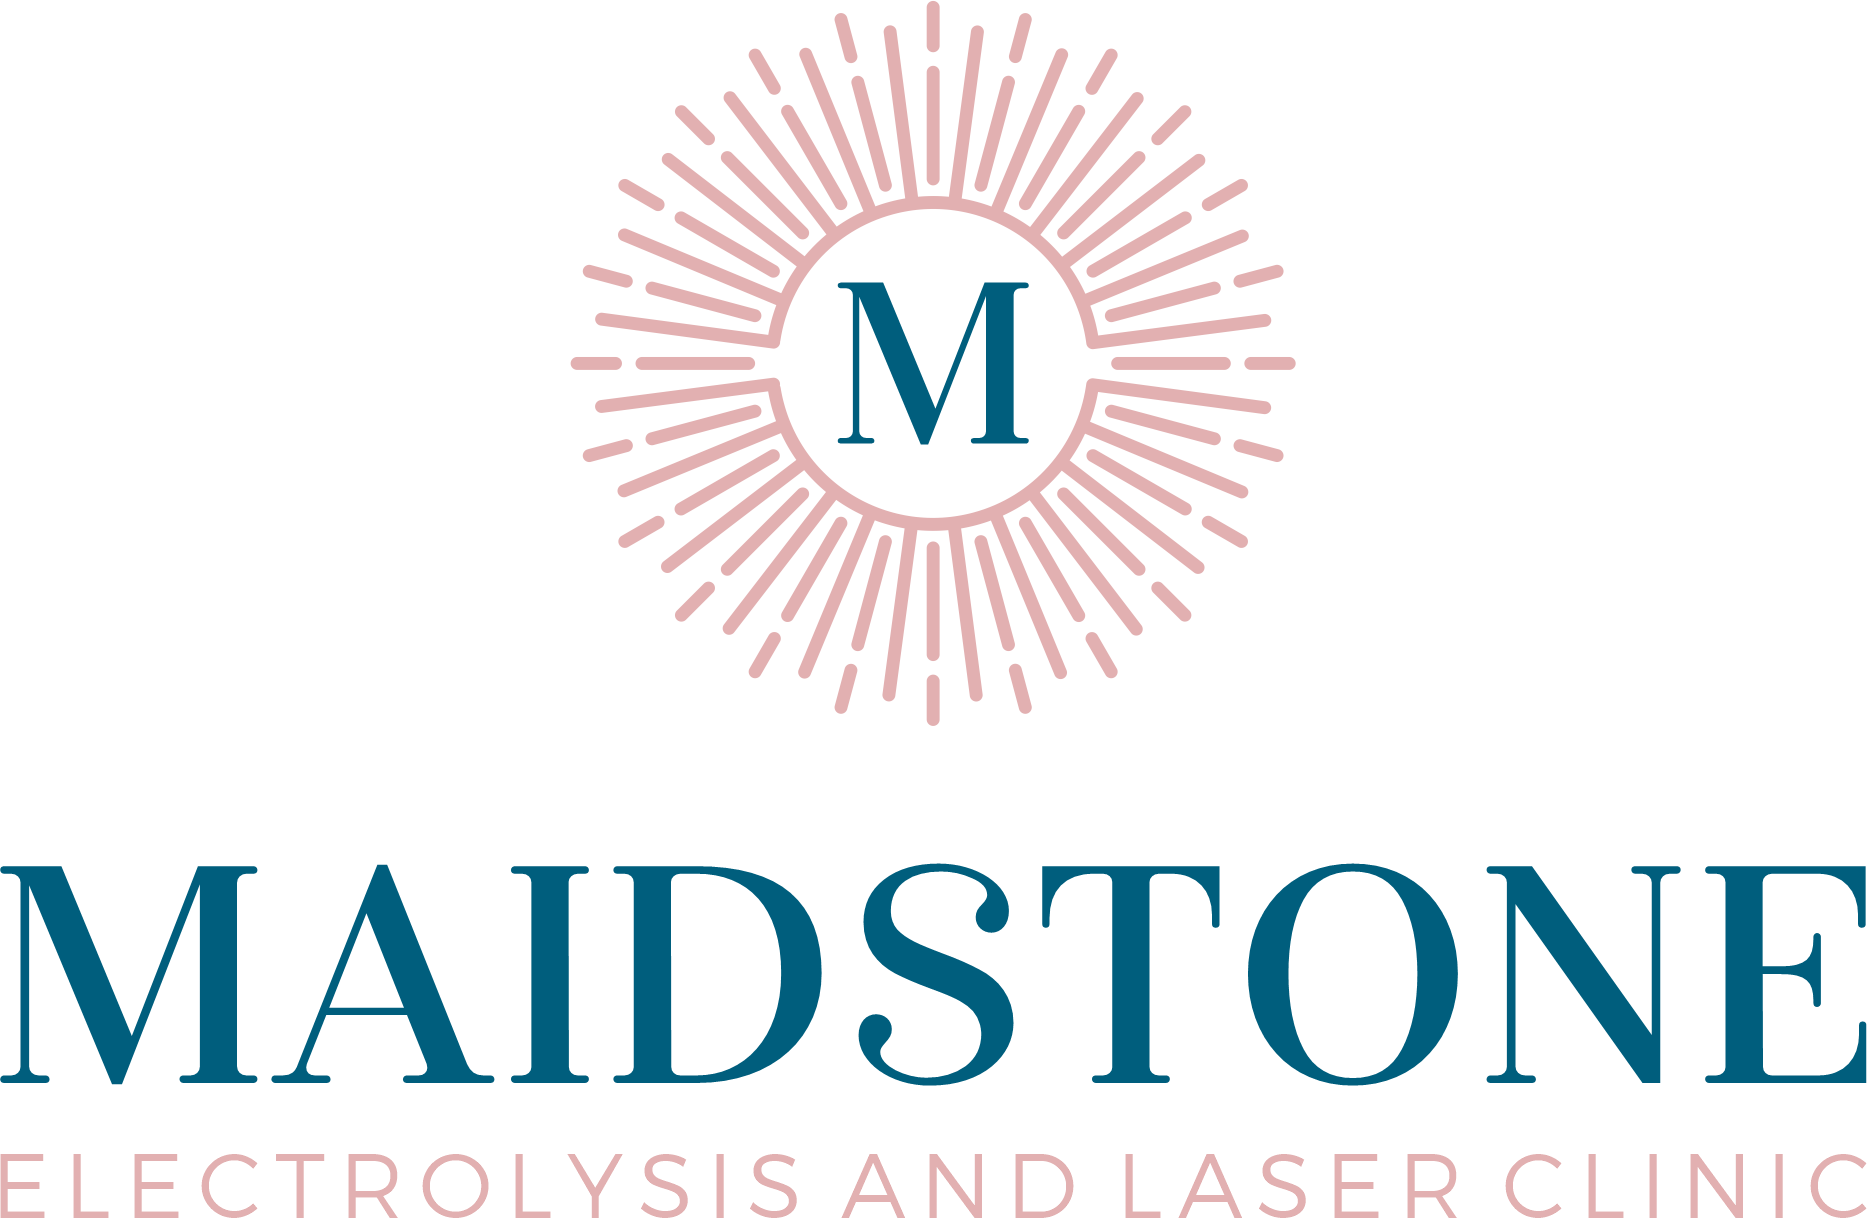 Maidstone Electrolysis and Laser Clinic